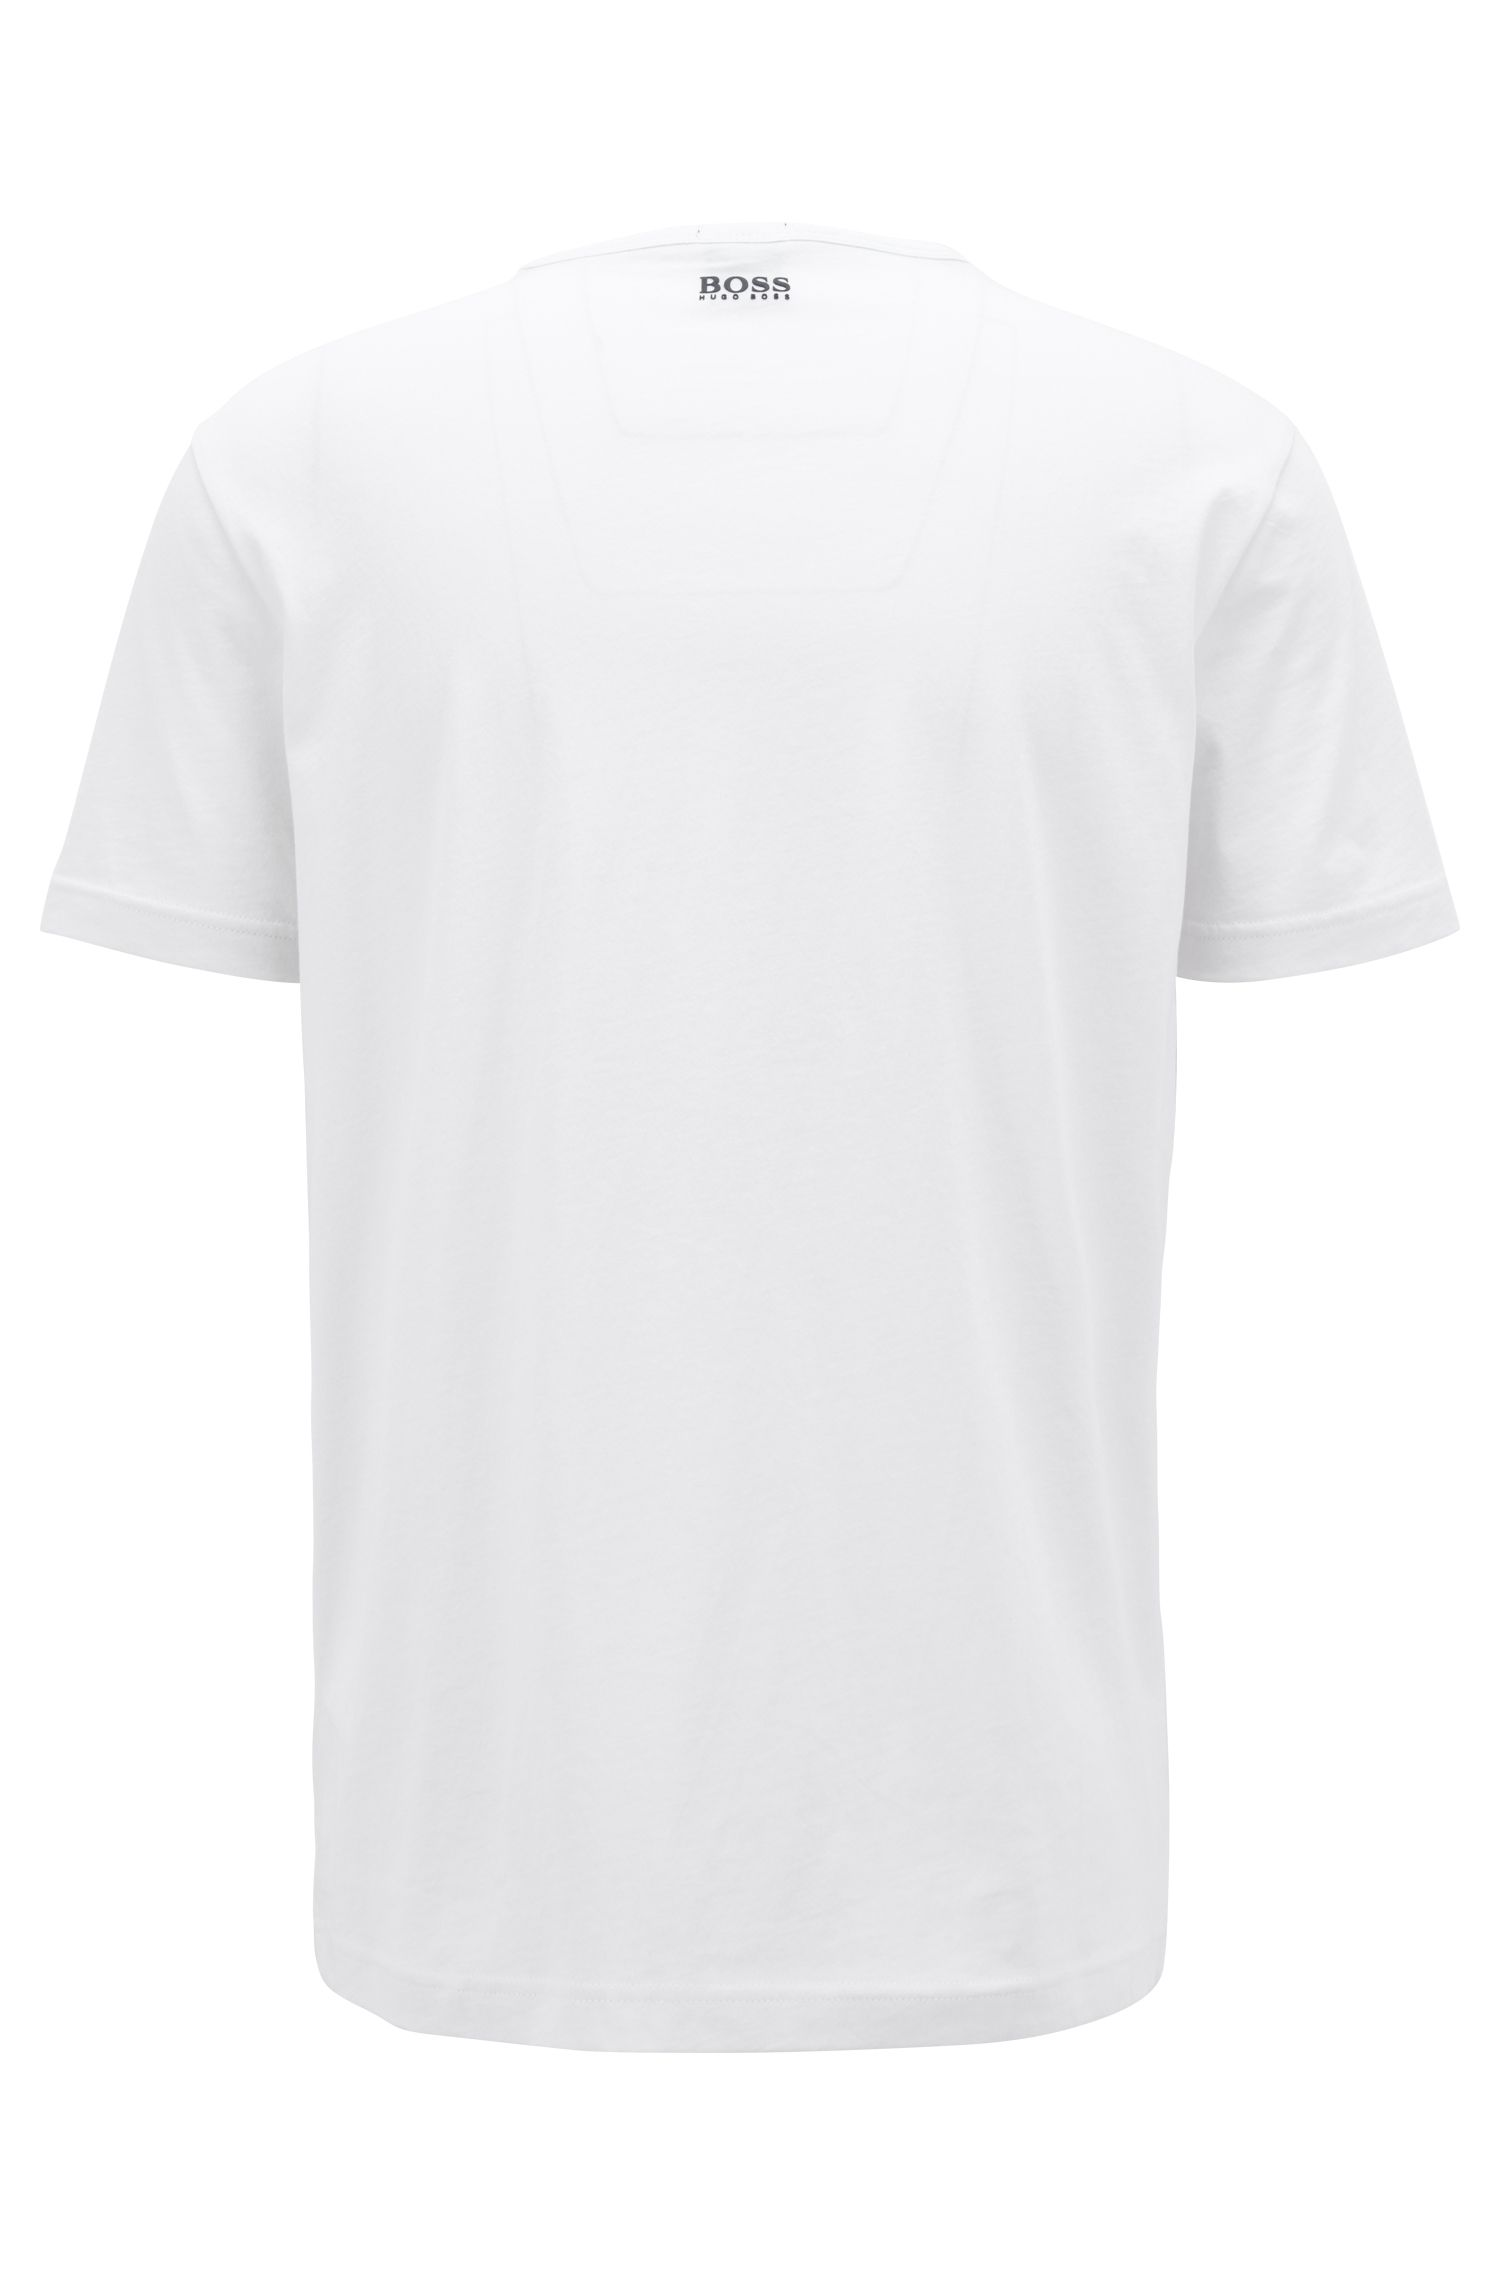 Short-sleeved T-shirt in cotton with graphic logo print, White